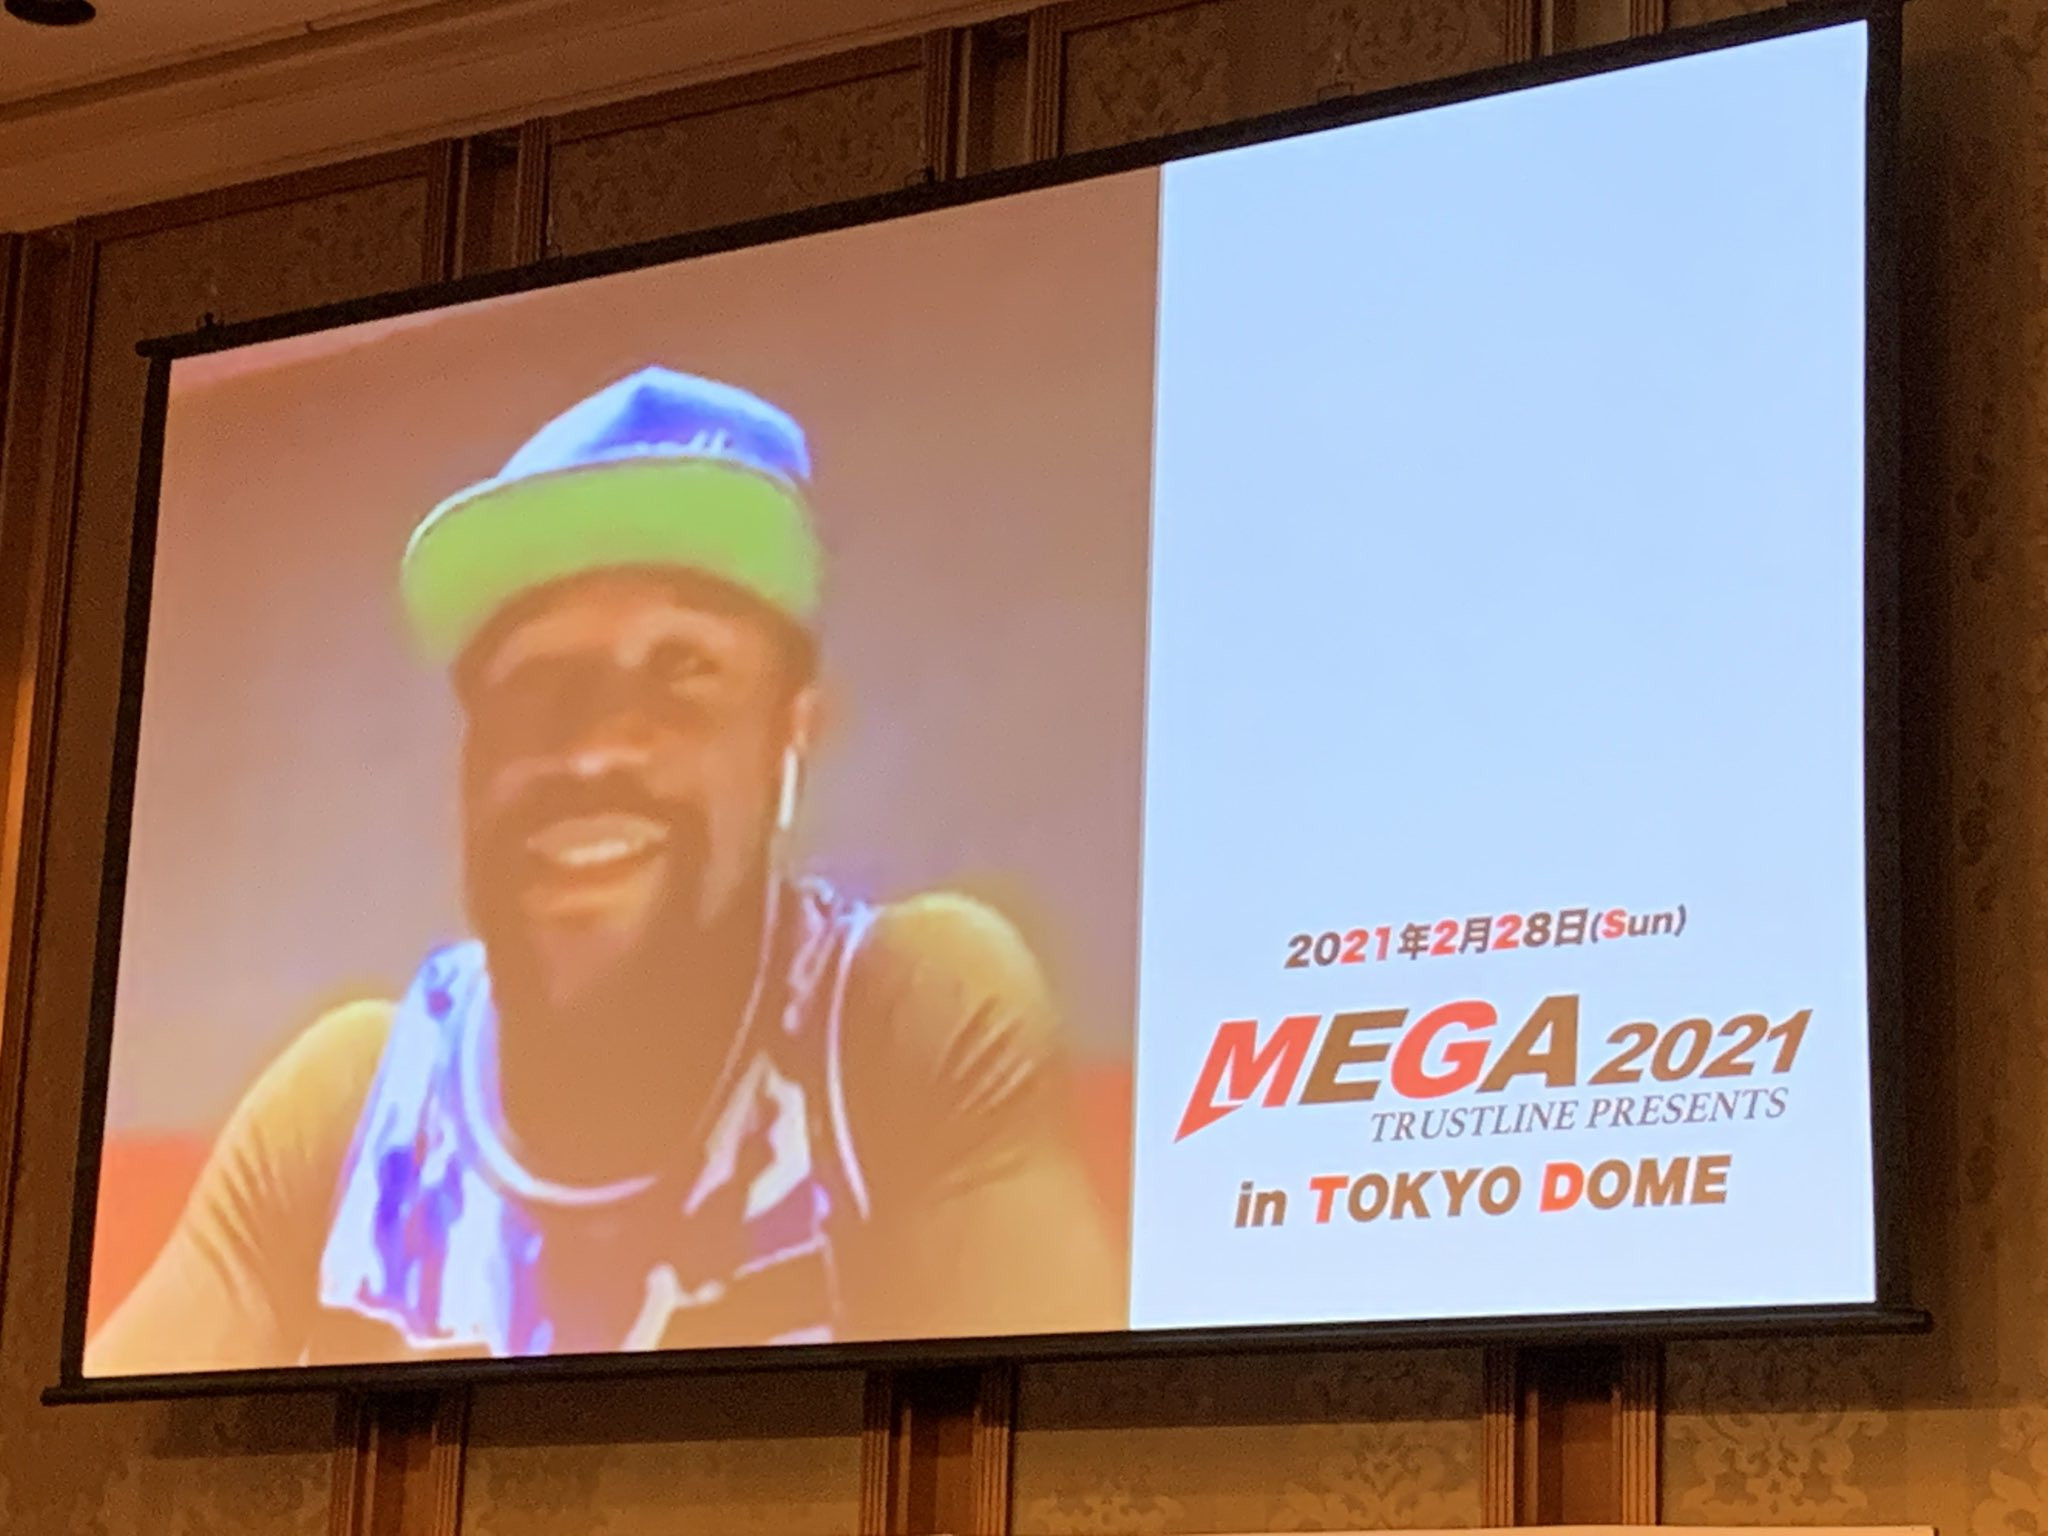 Floyd Mayweather comes out of retirement again as he announces his return to the ring in Tokyo in February